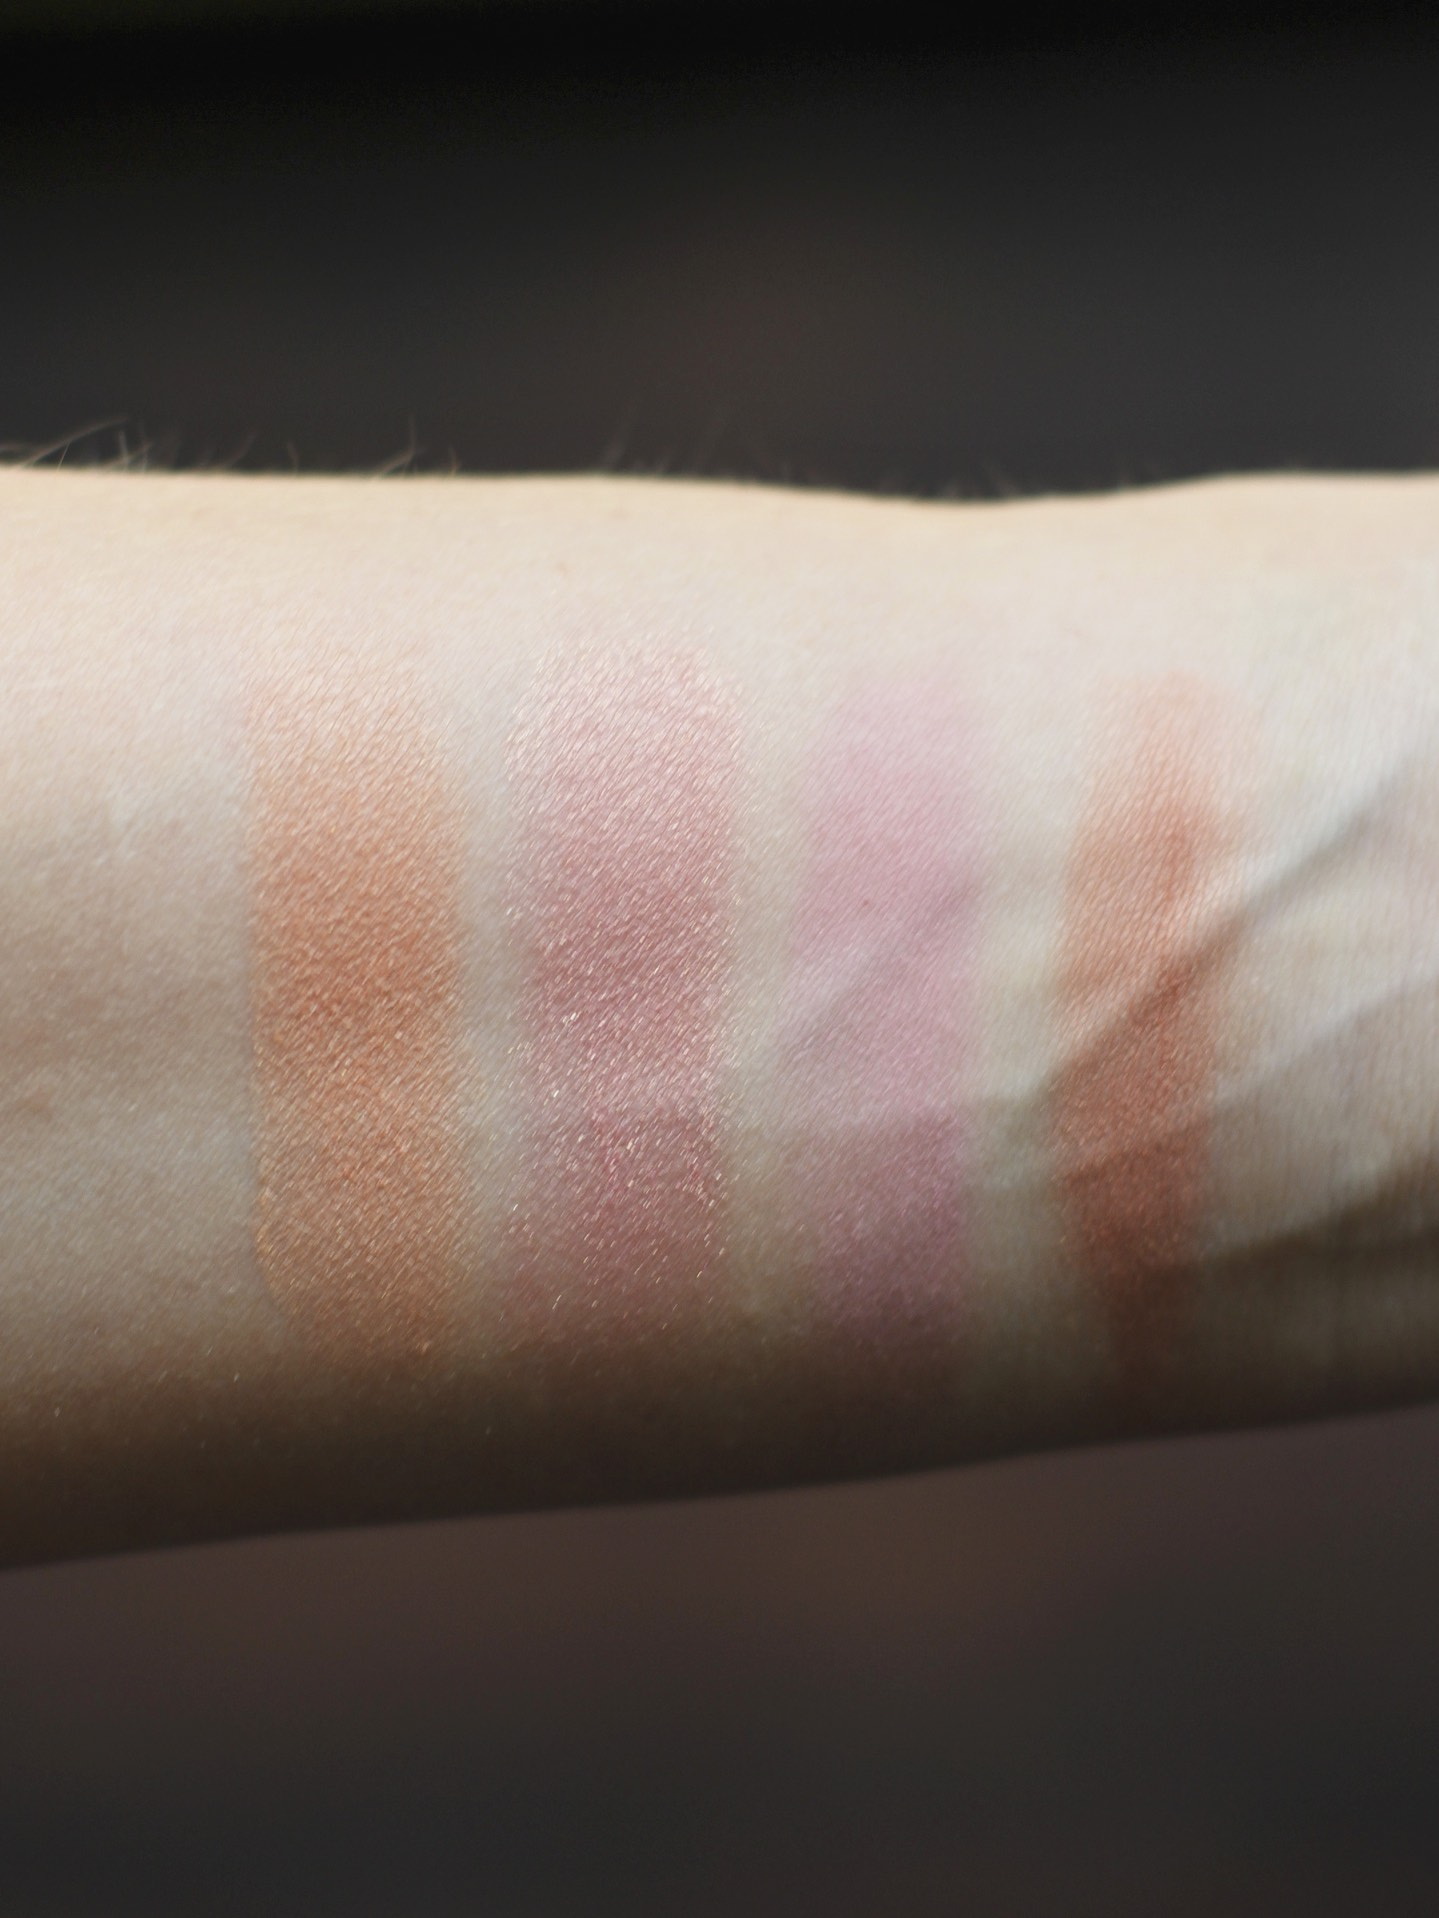 Left to right: Luminoso, Ducle Pink, Dollface, Apricot in the Middle